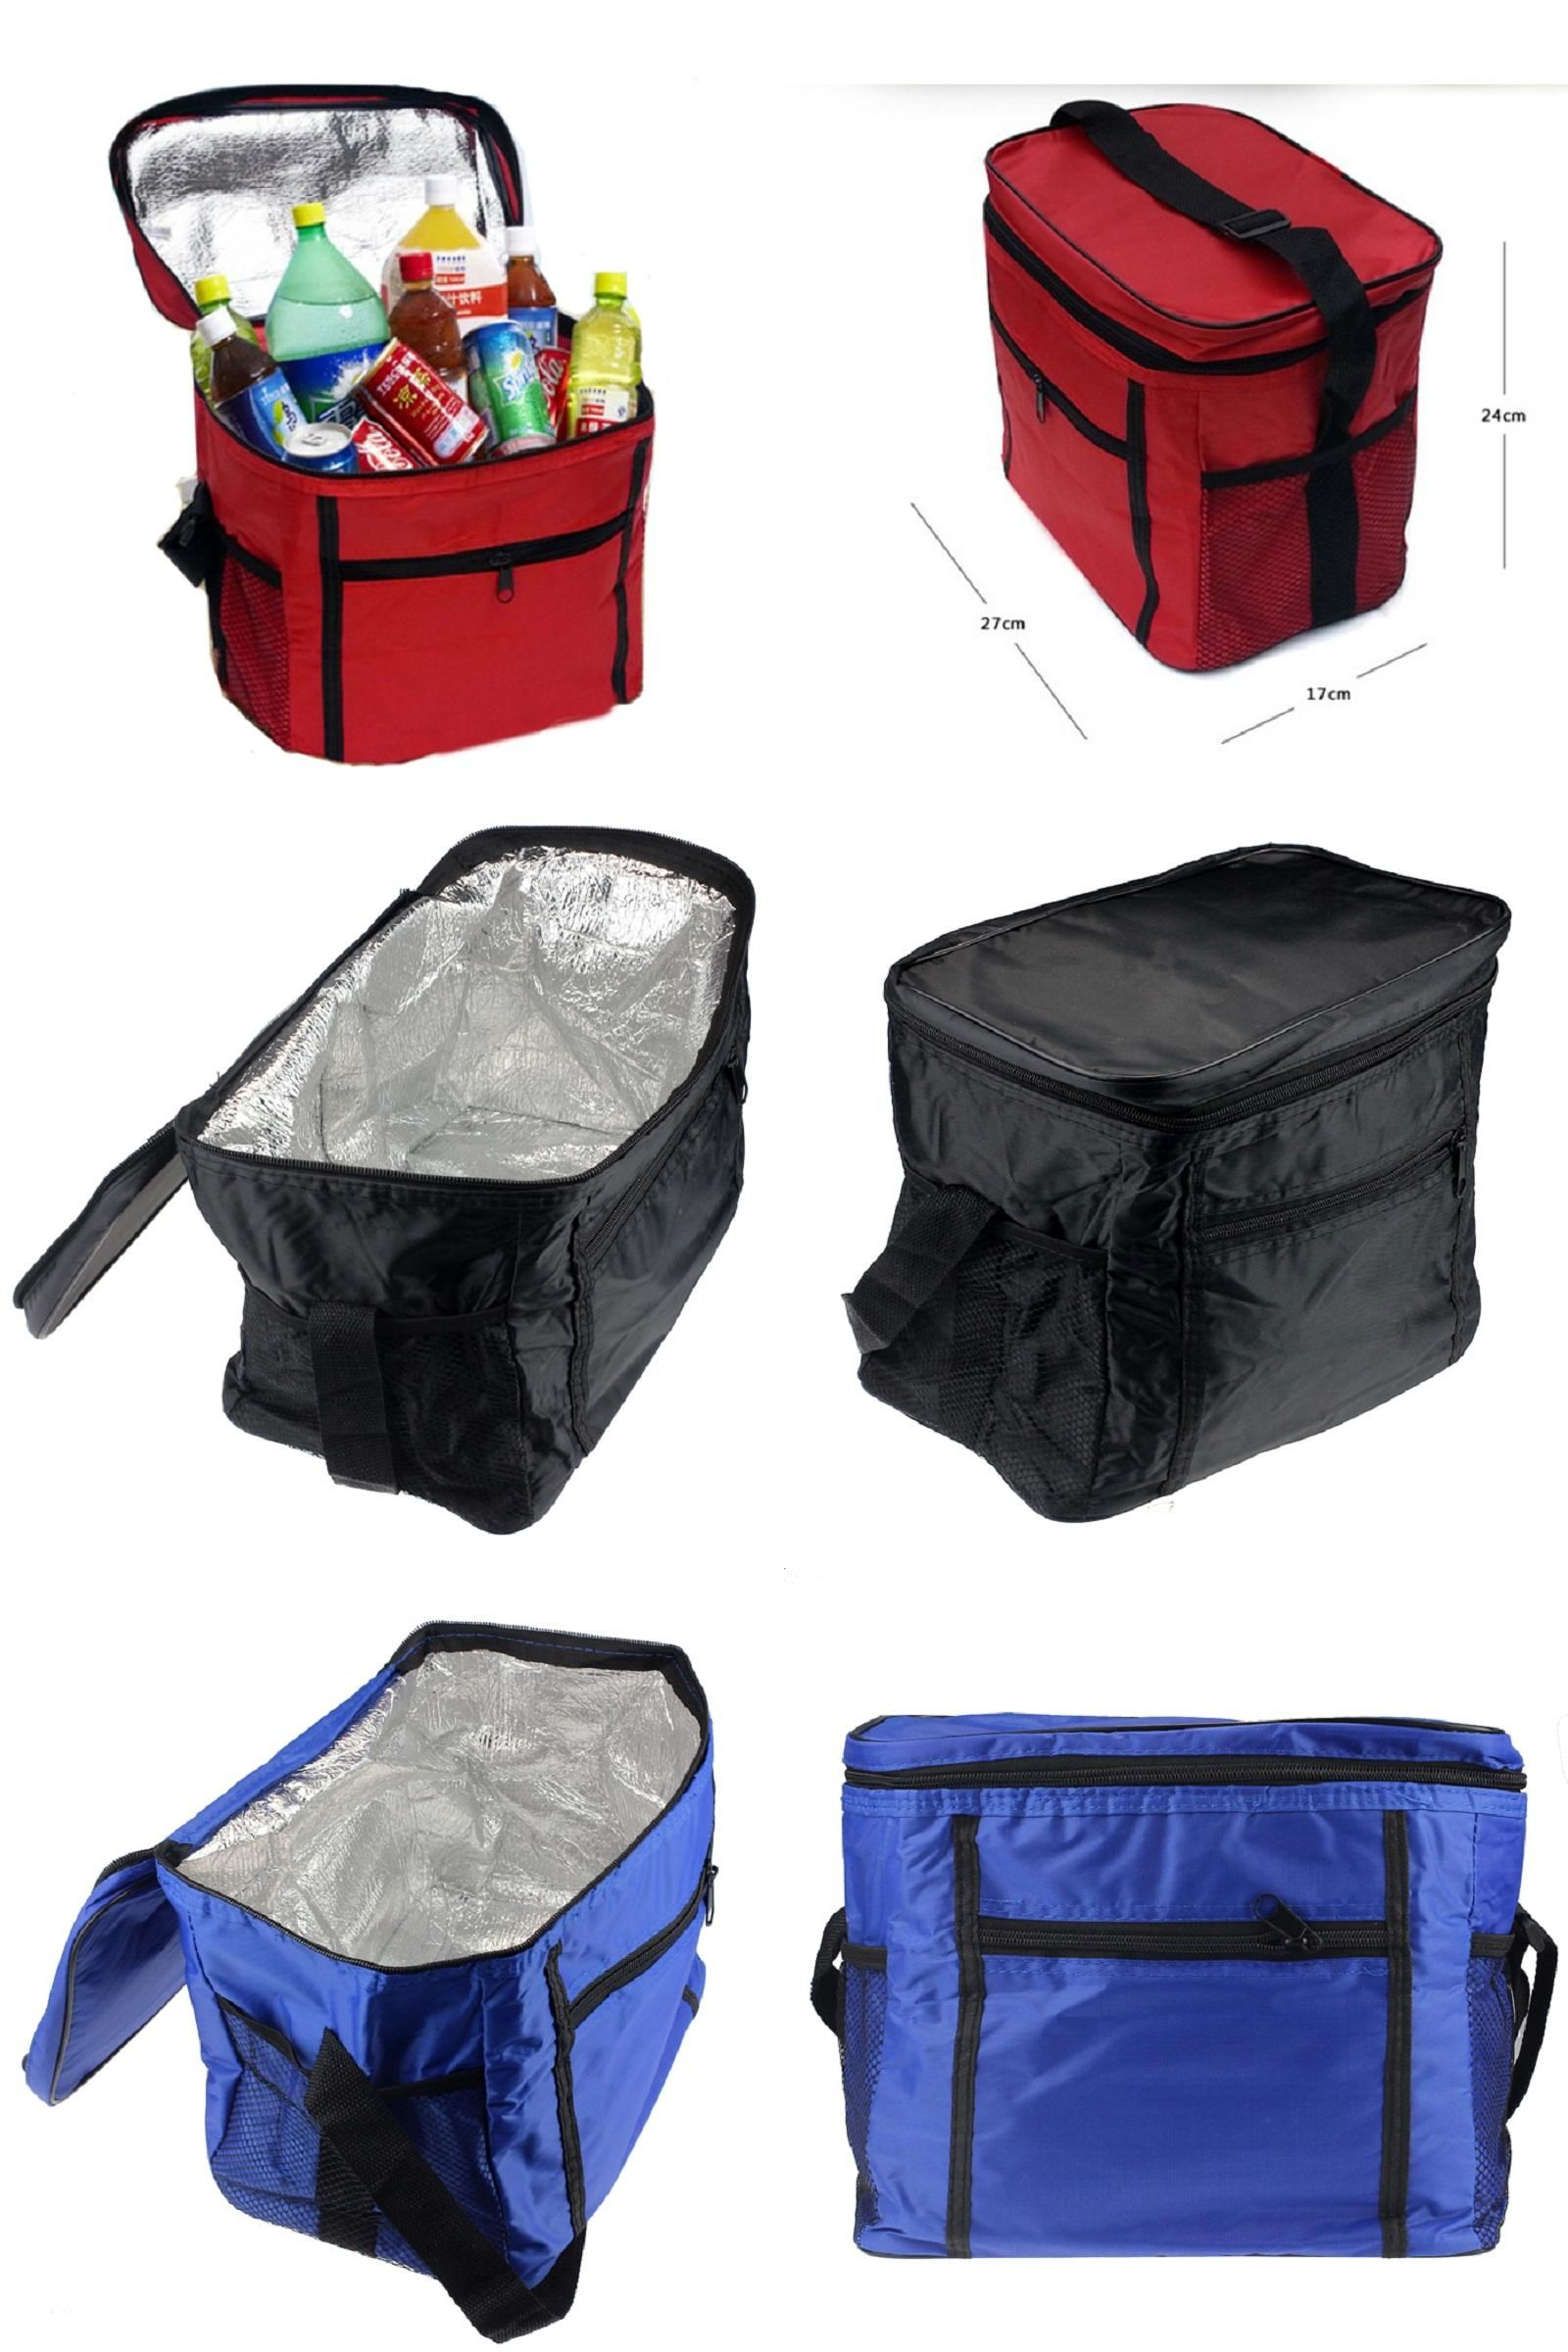 Visit To Buy Naivety Lunch Bag New Fashion Thermal Cooler Waterproof Insulated Tote Portable Picnic New Insulated Tote Fashionable Lunch Bags Functional Bag